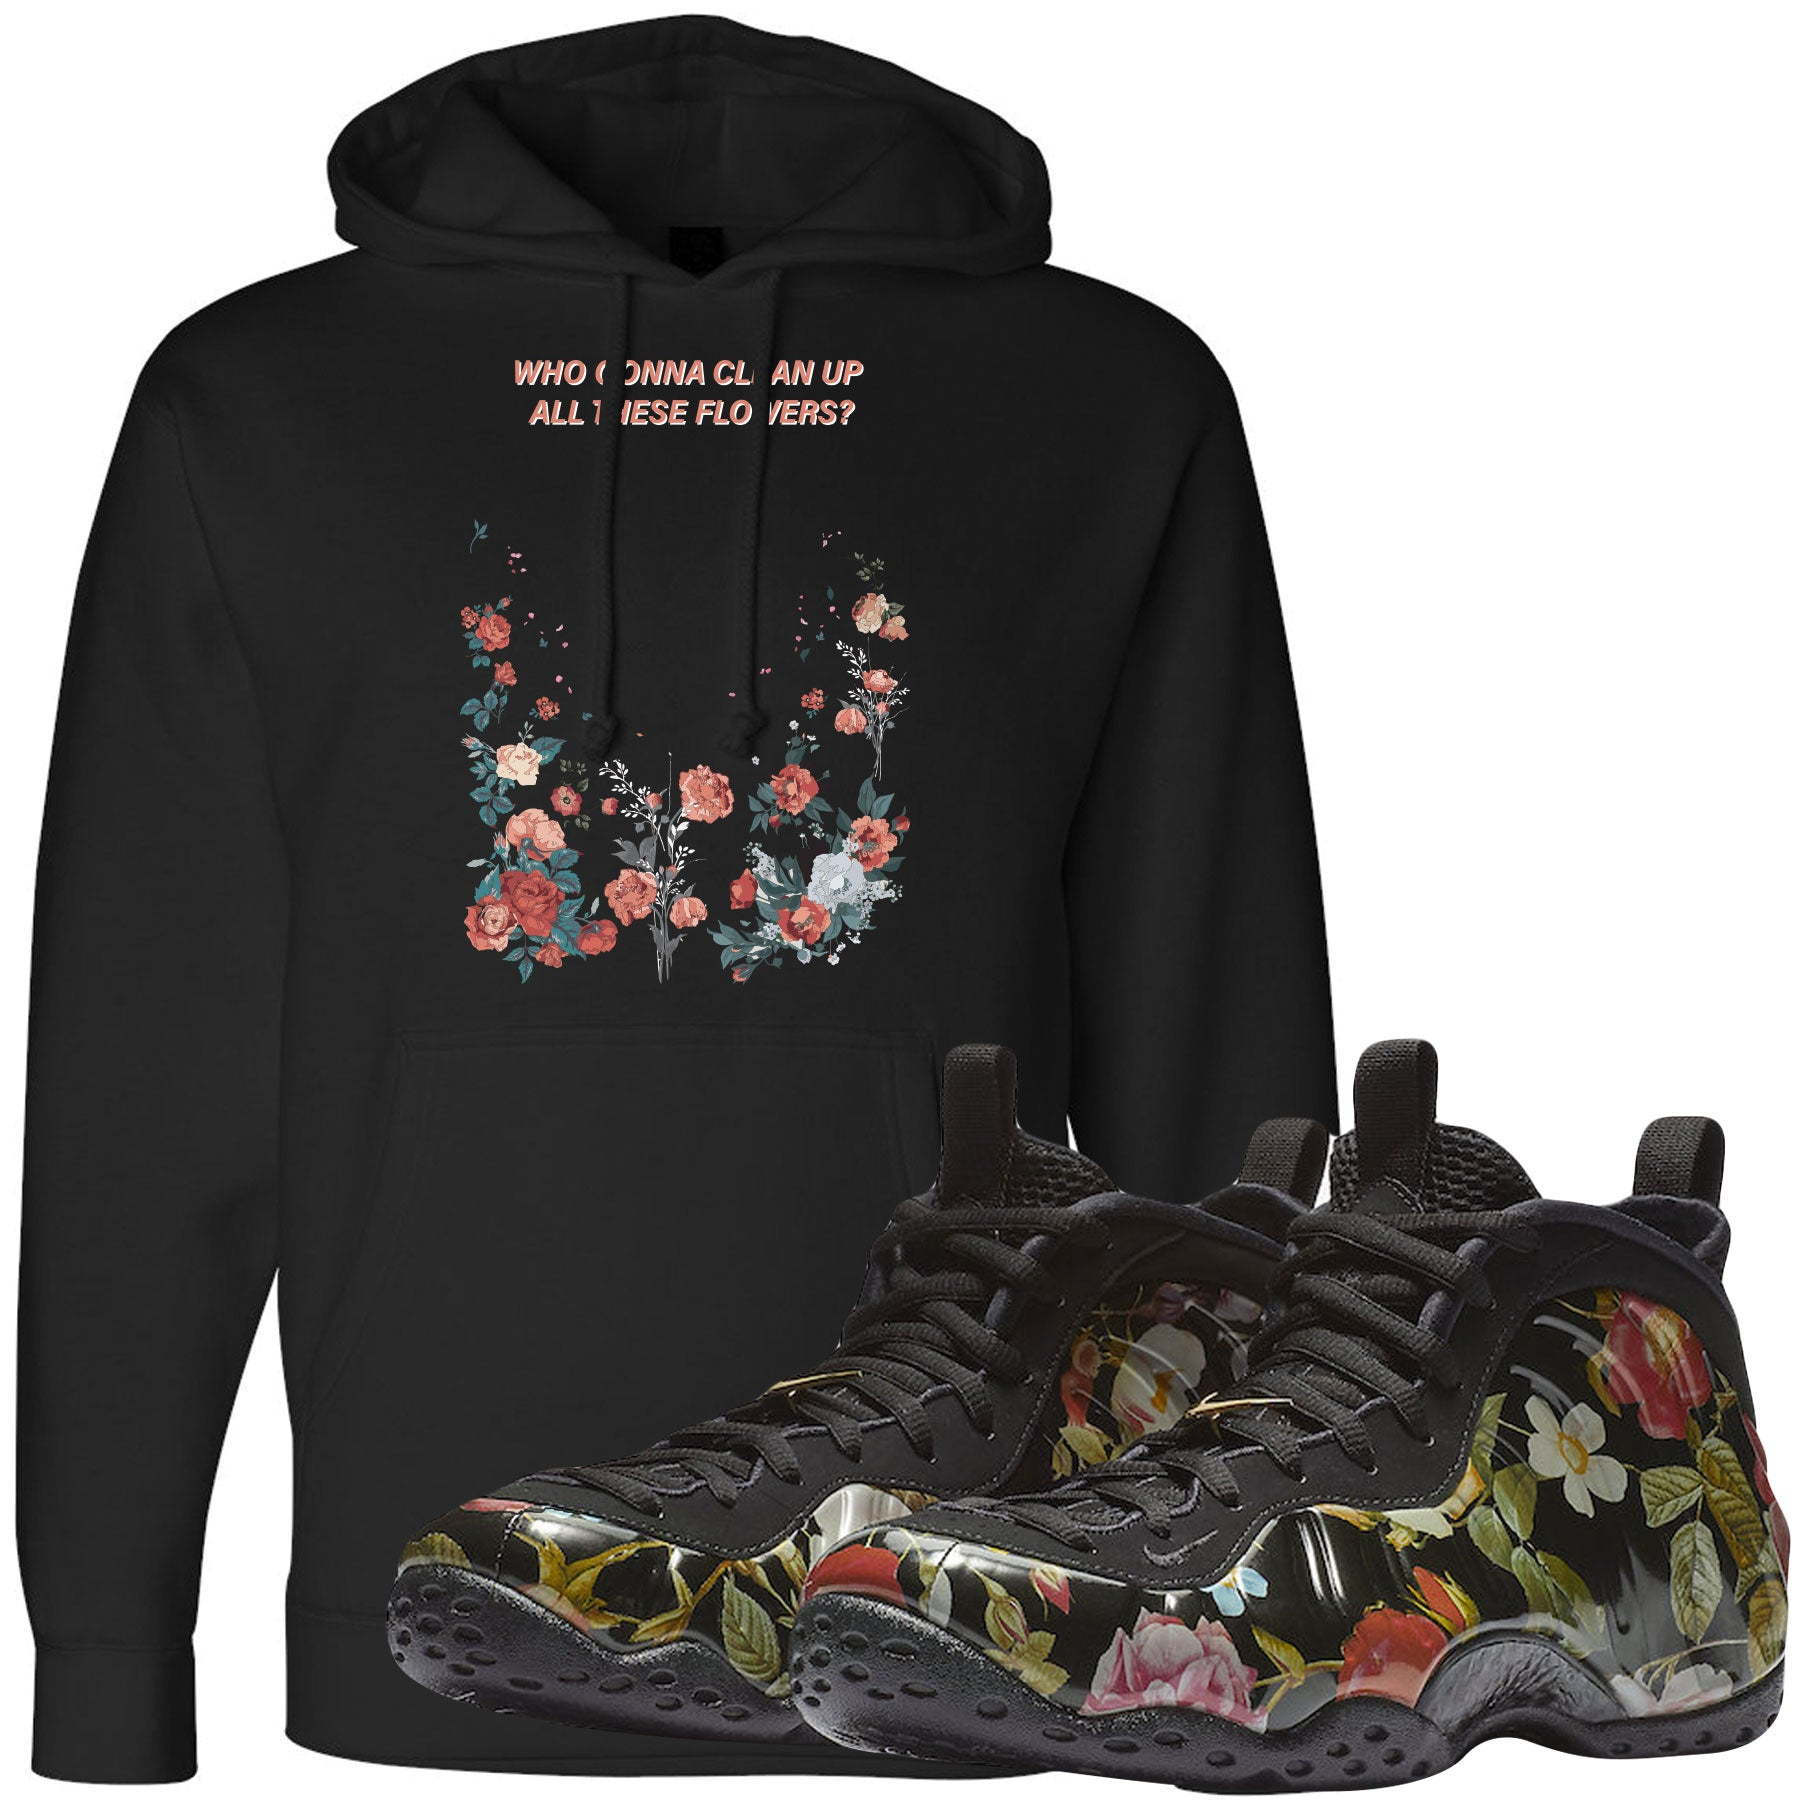 ae1f32b6 Wear this sneaker matching hoodie to match your Air Foamposite One Floral  sneakers. Match your